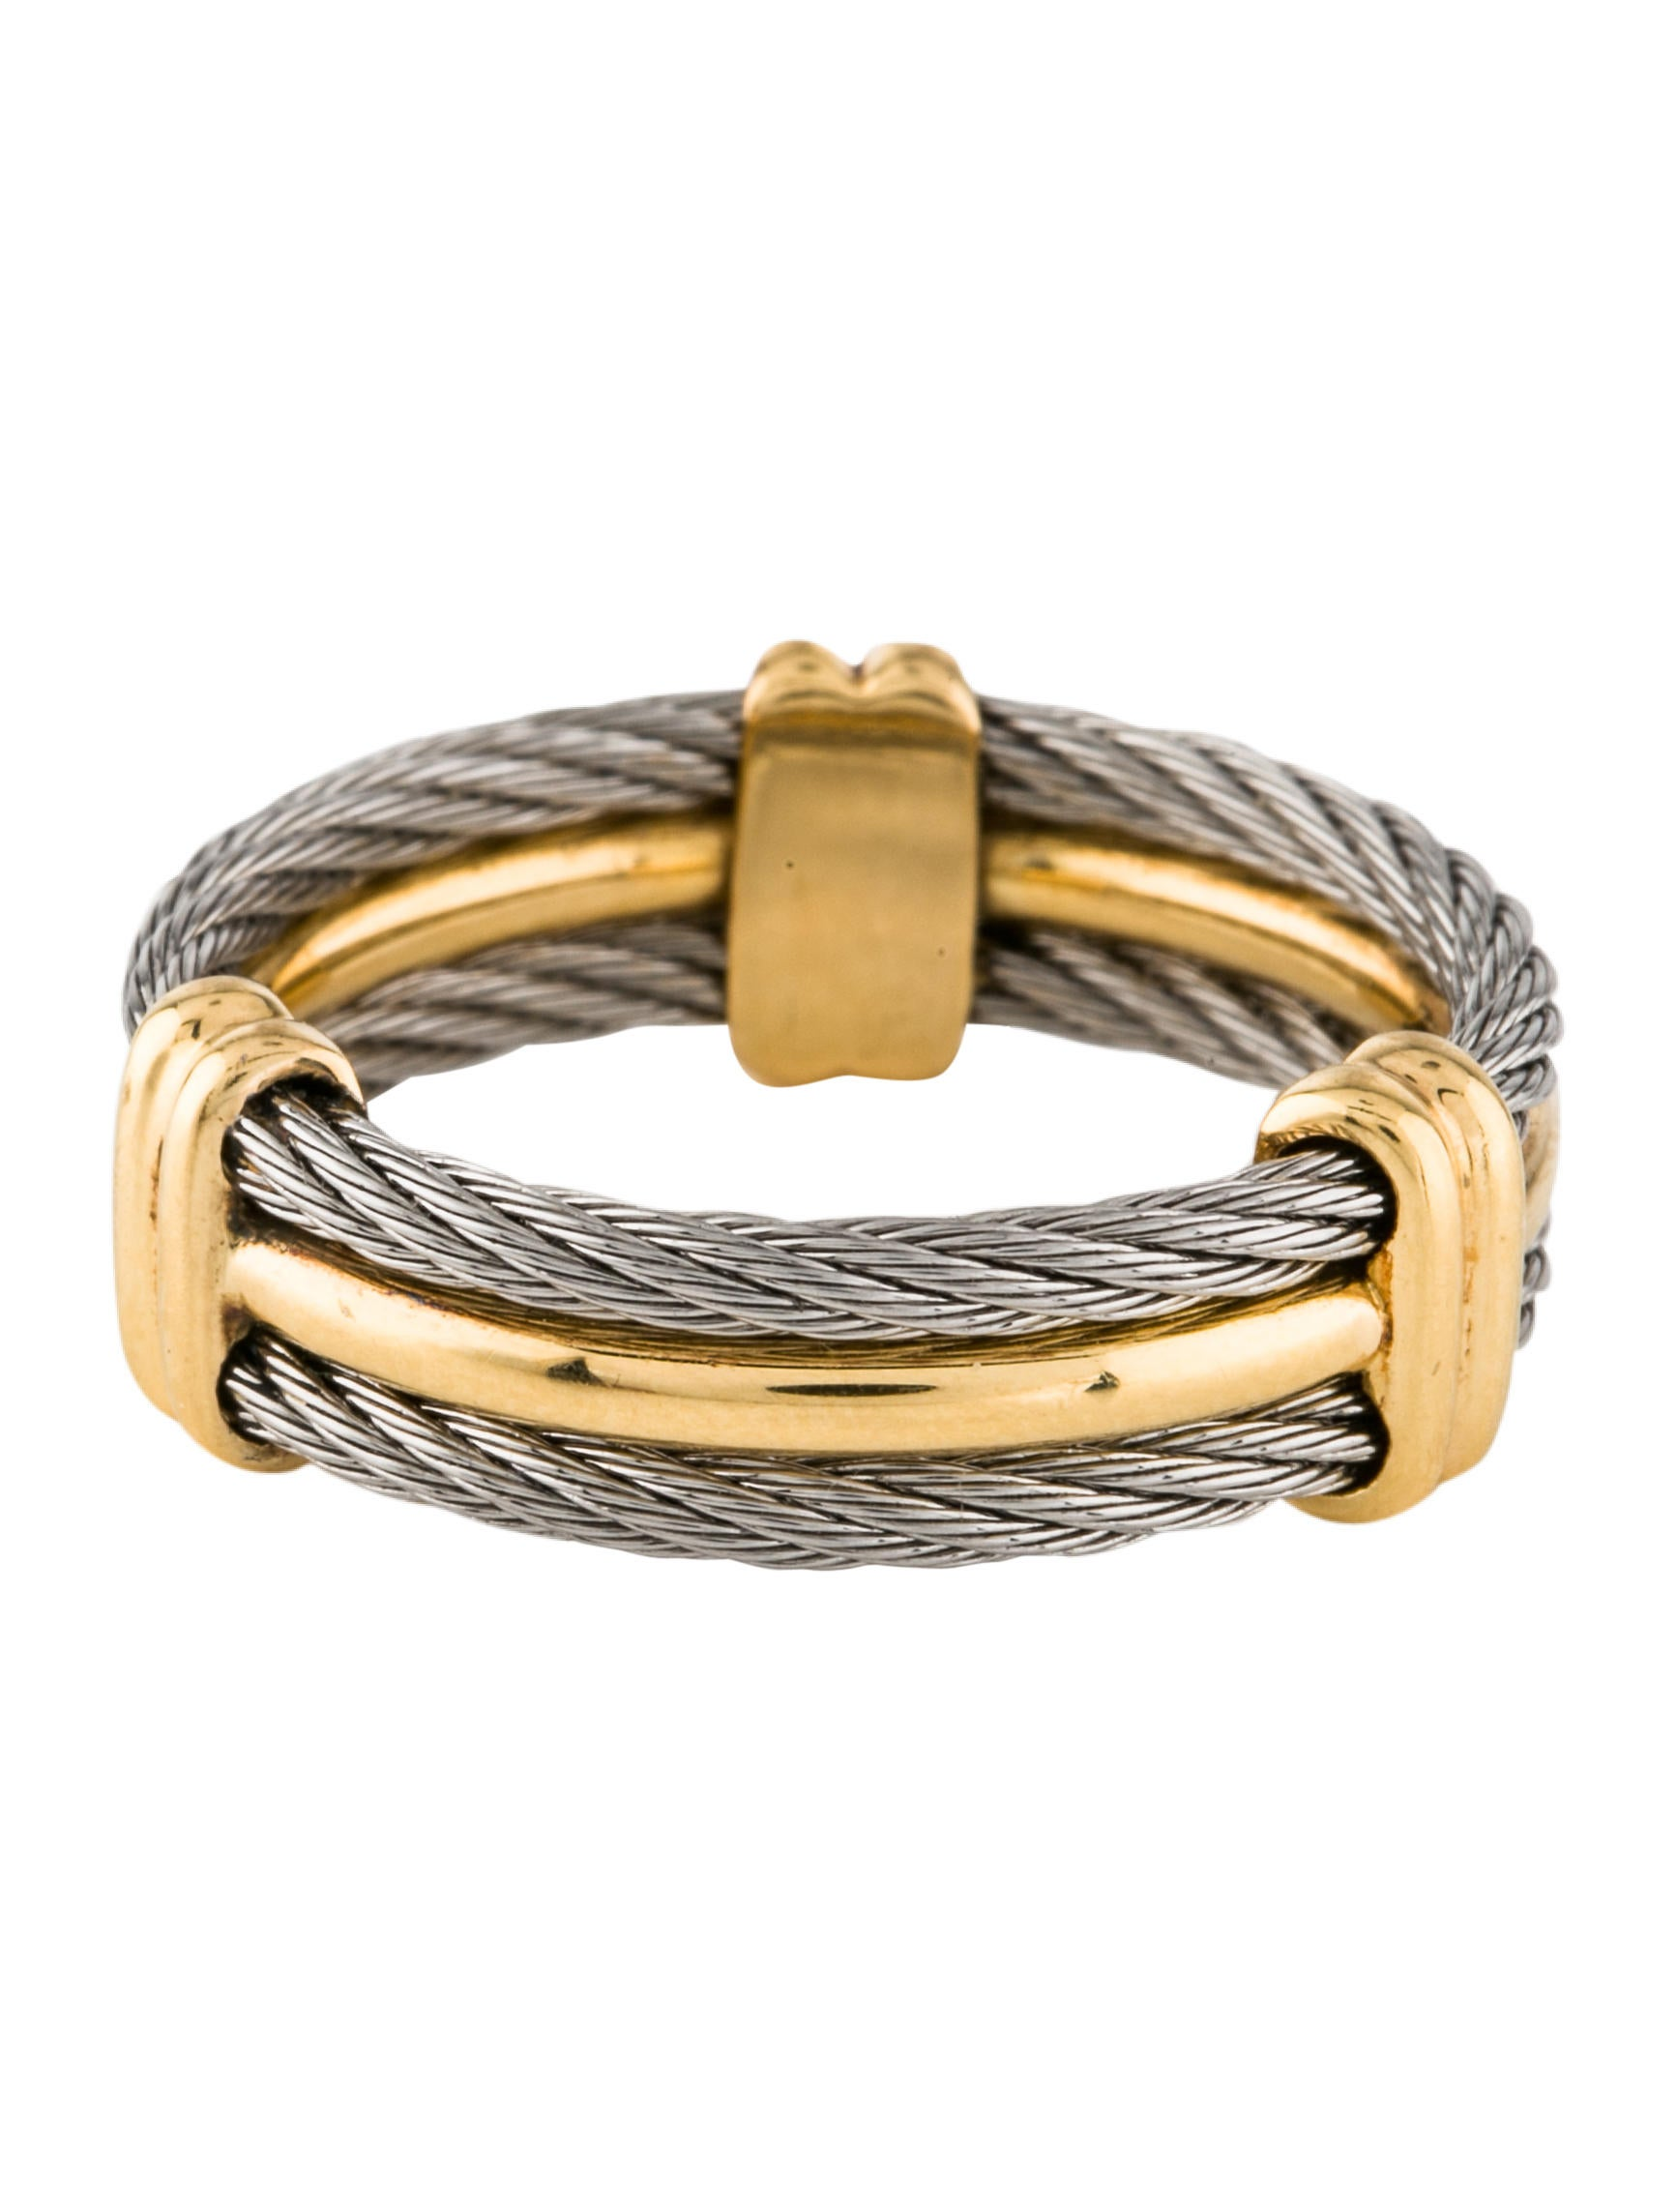 Charriol Celtic Cable Wedding Band - Rings - CH121779 | The RealReal